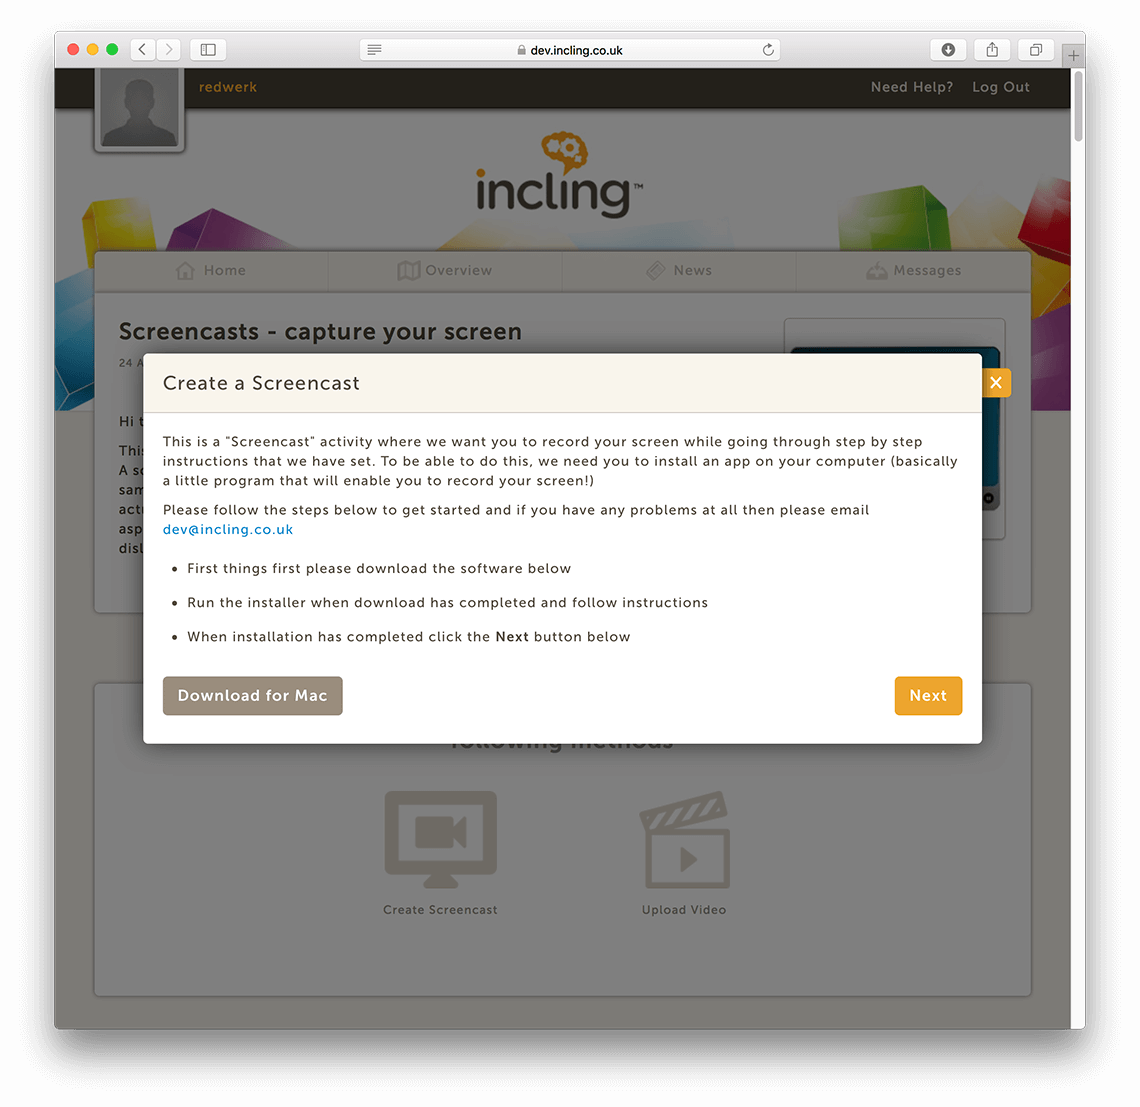 Incling screencasting app: Create a screencast / Redwerk company